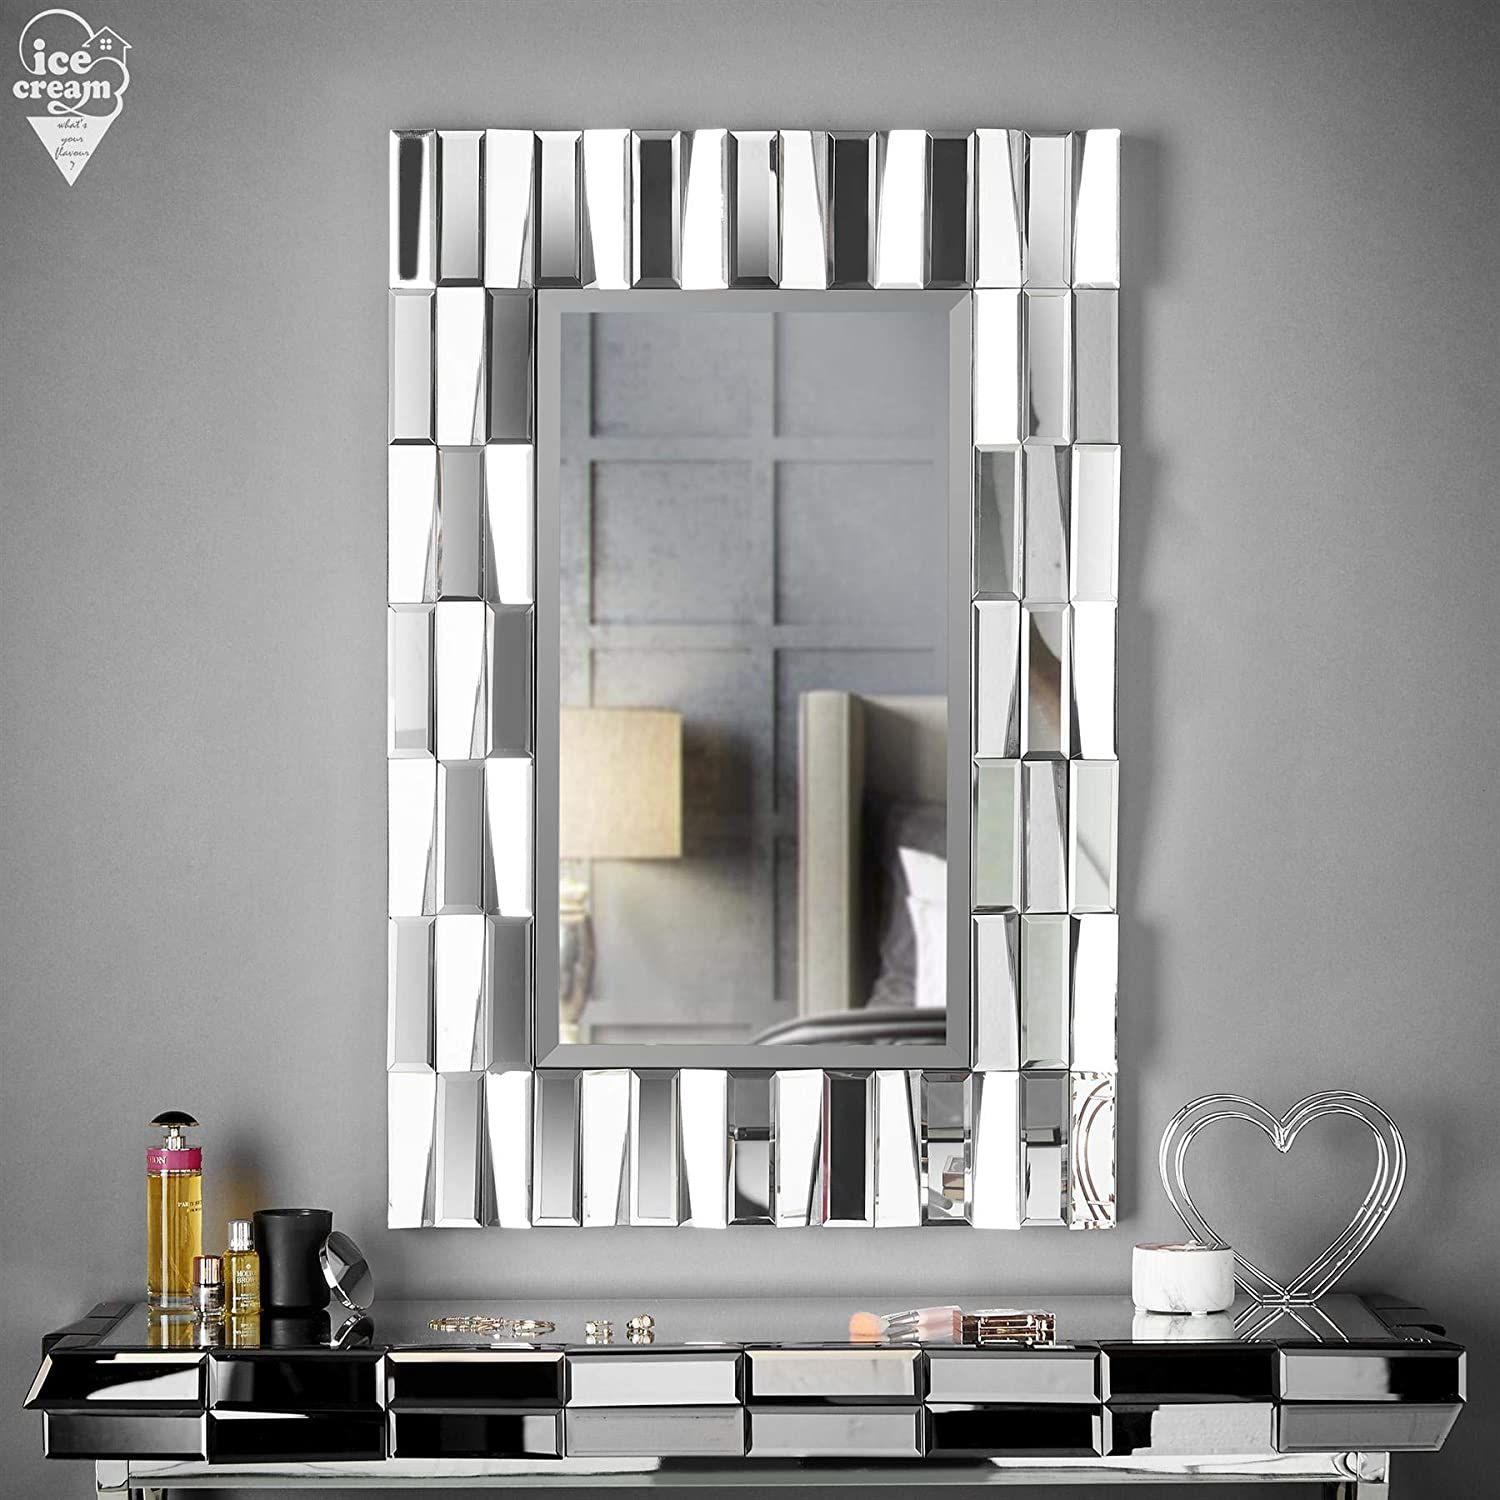 Grey Wall Mirror Rectangle 3d Glass Mirrored Effect For Living Room Hall Bedroom In 2020 Grey Wall Mirrors Rectangle Mirror Interior Design Boards #rectangle #mirror #for #living #room